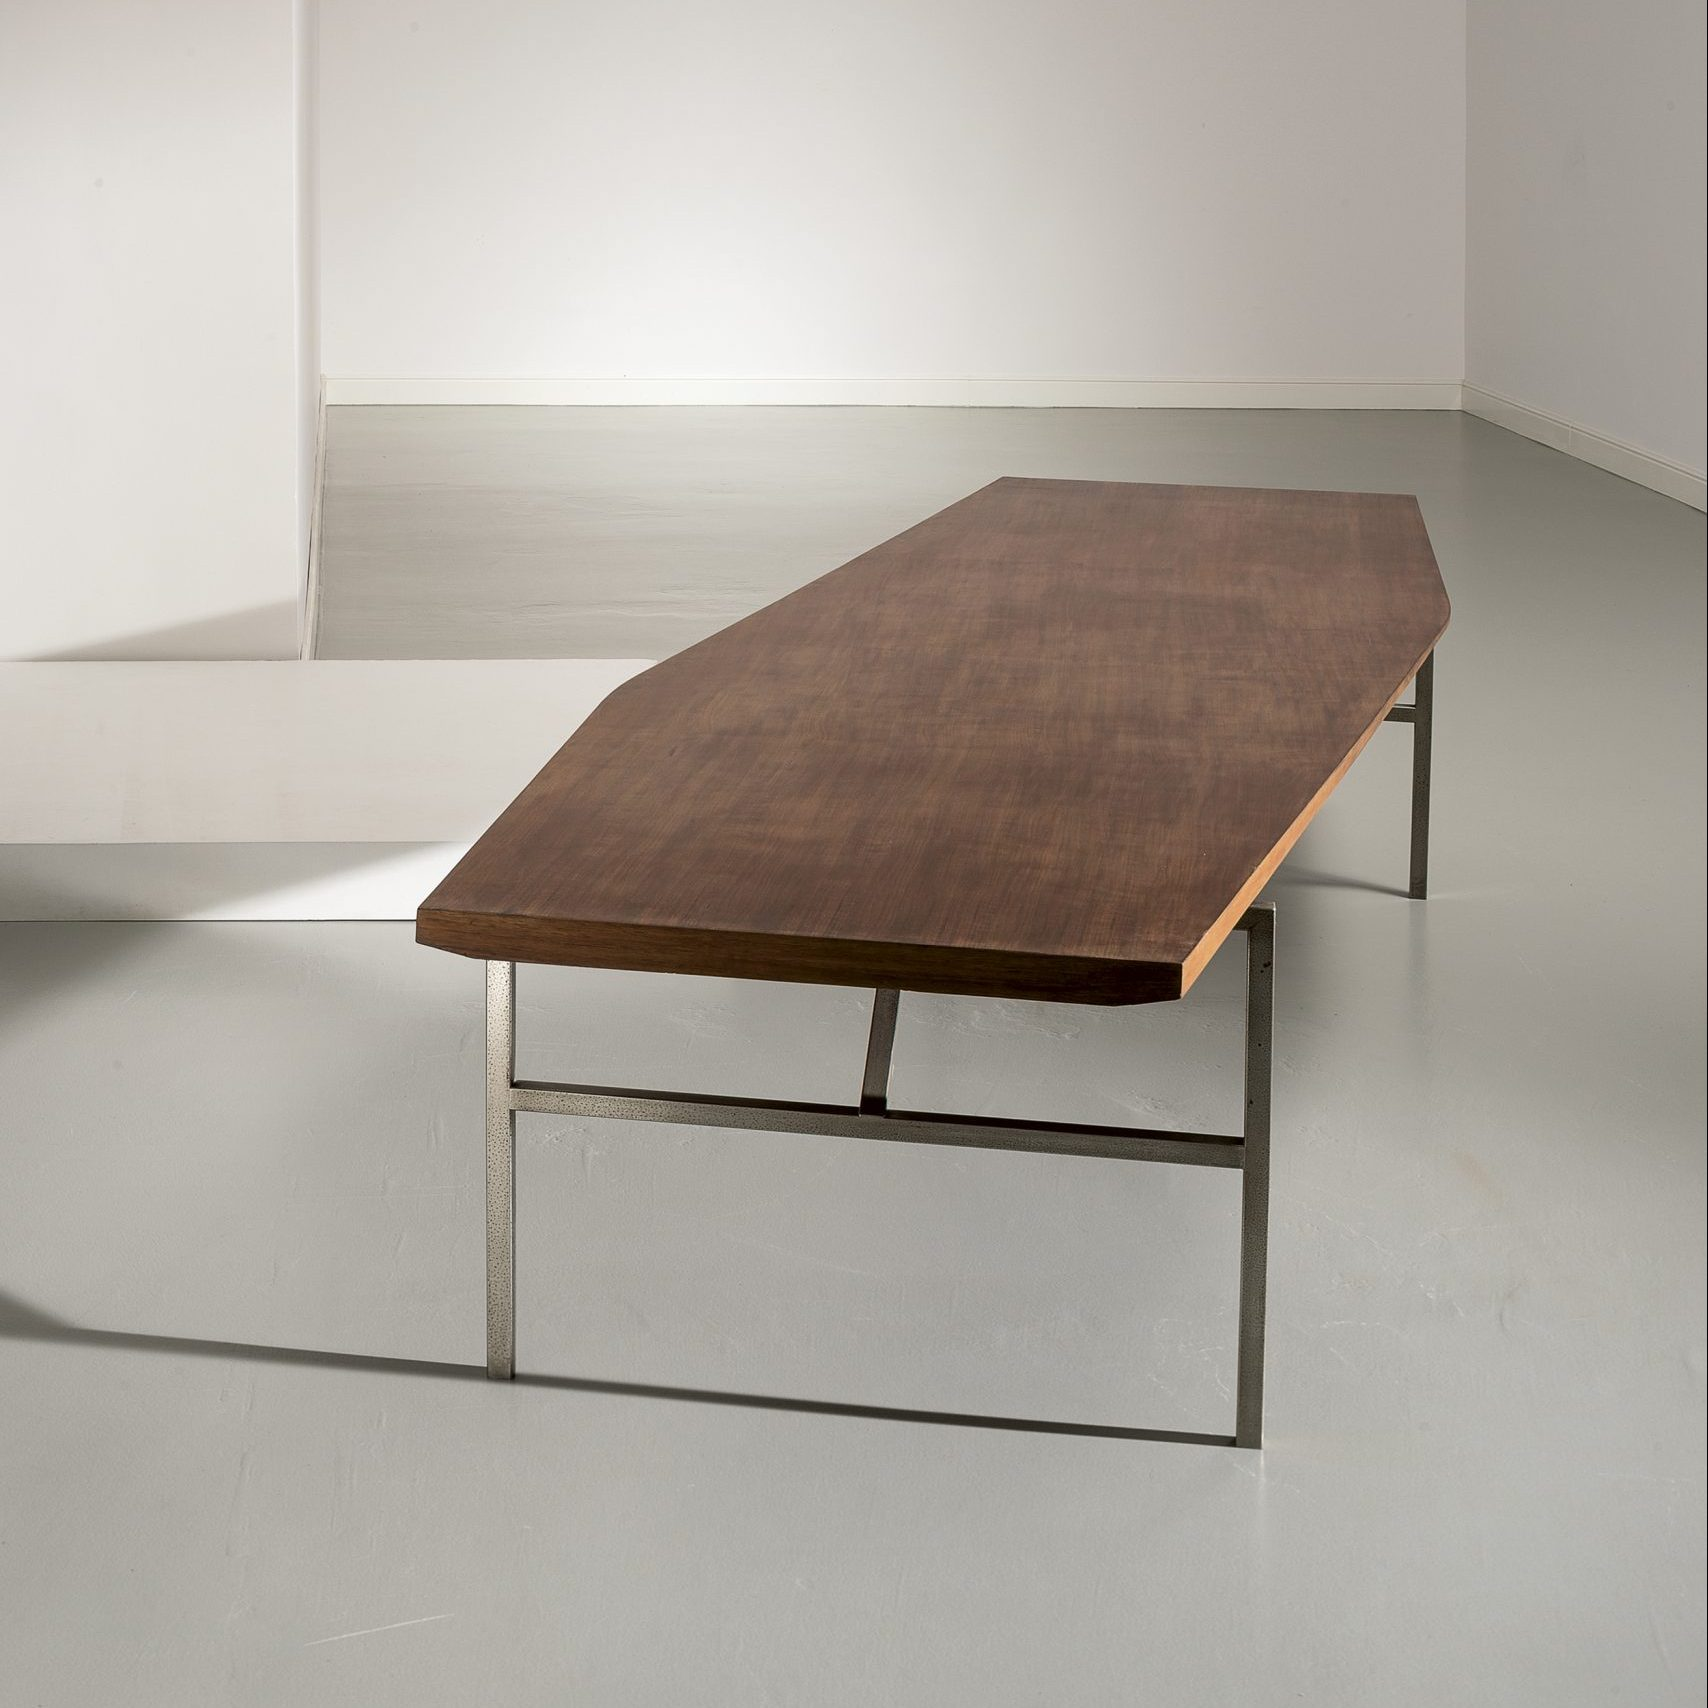 Giovanni Offredi |                                  Custom made table for Casa C.